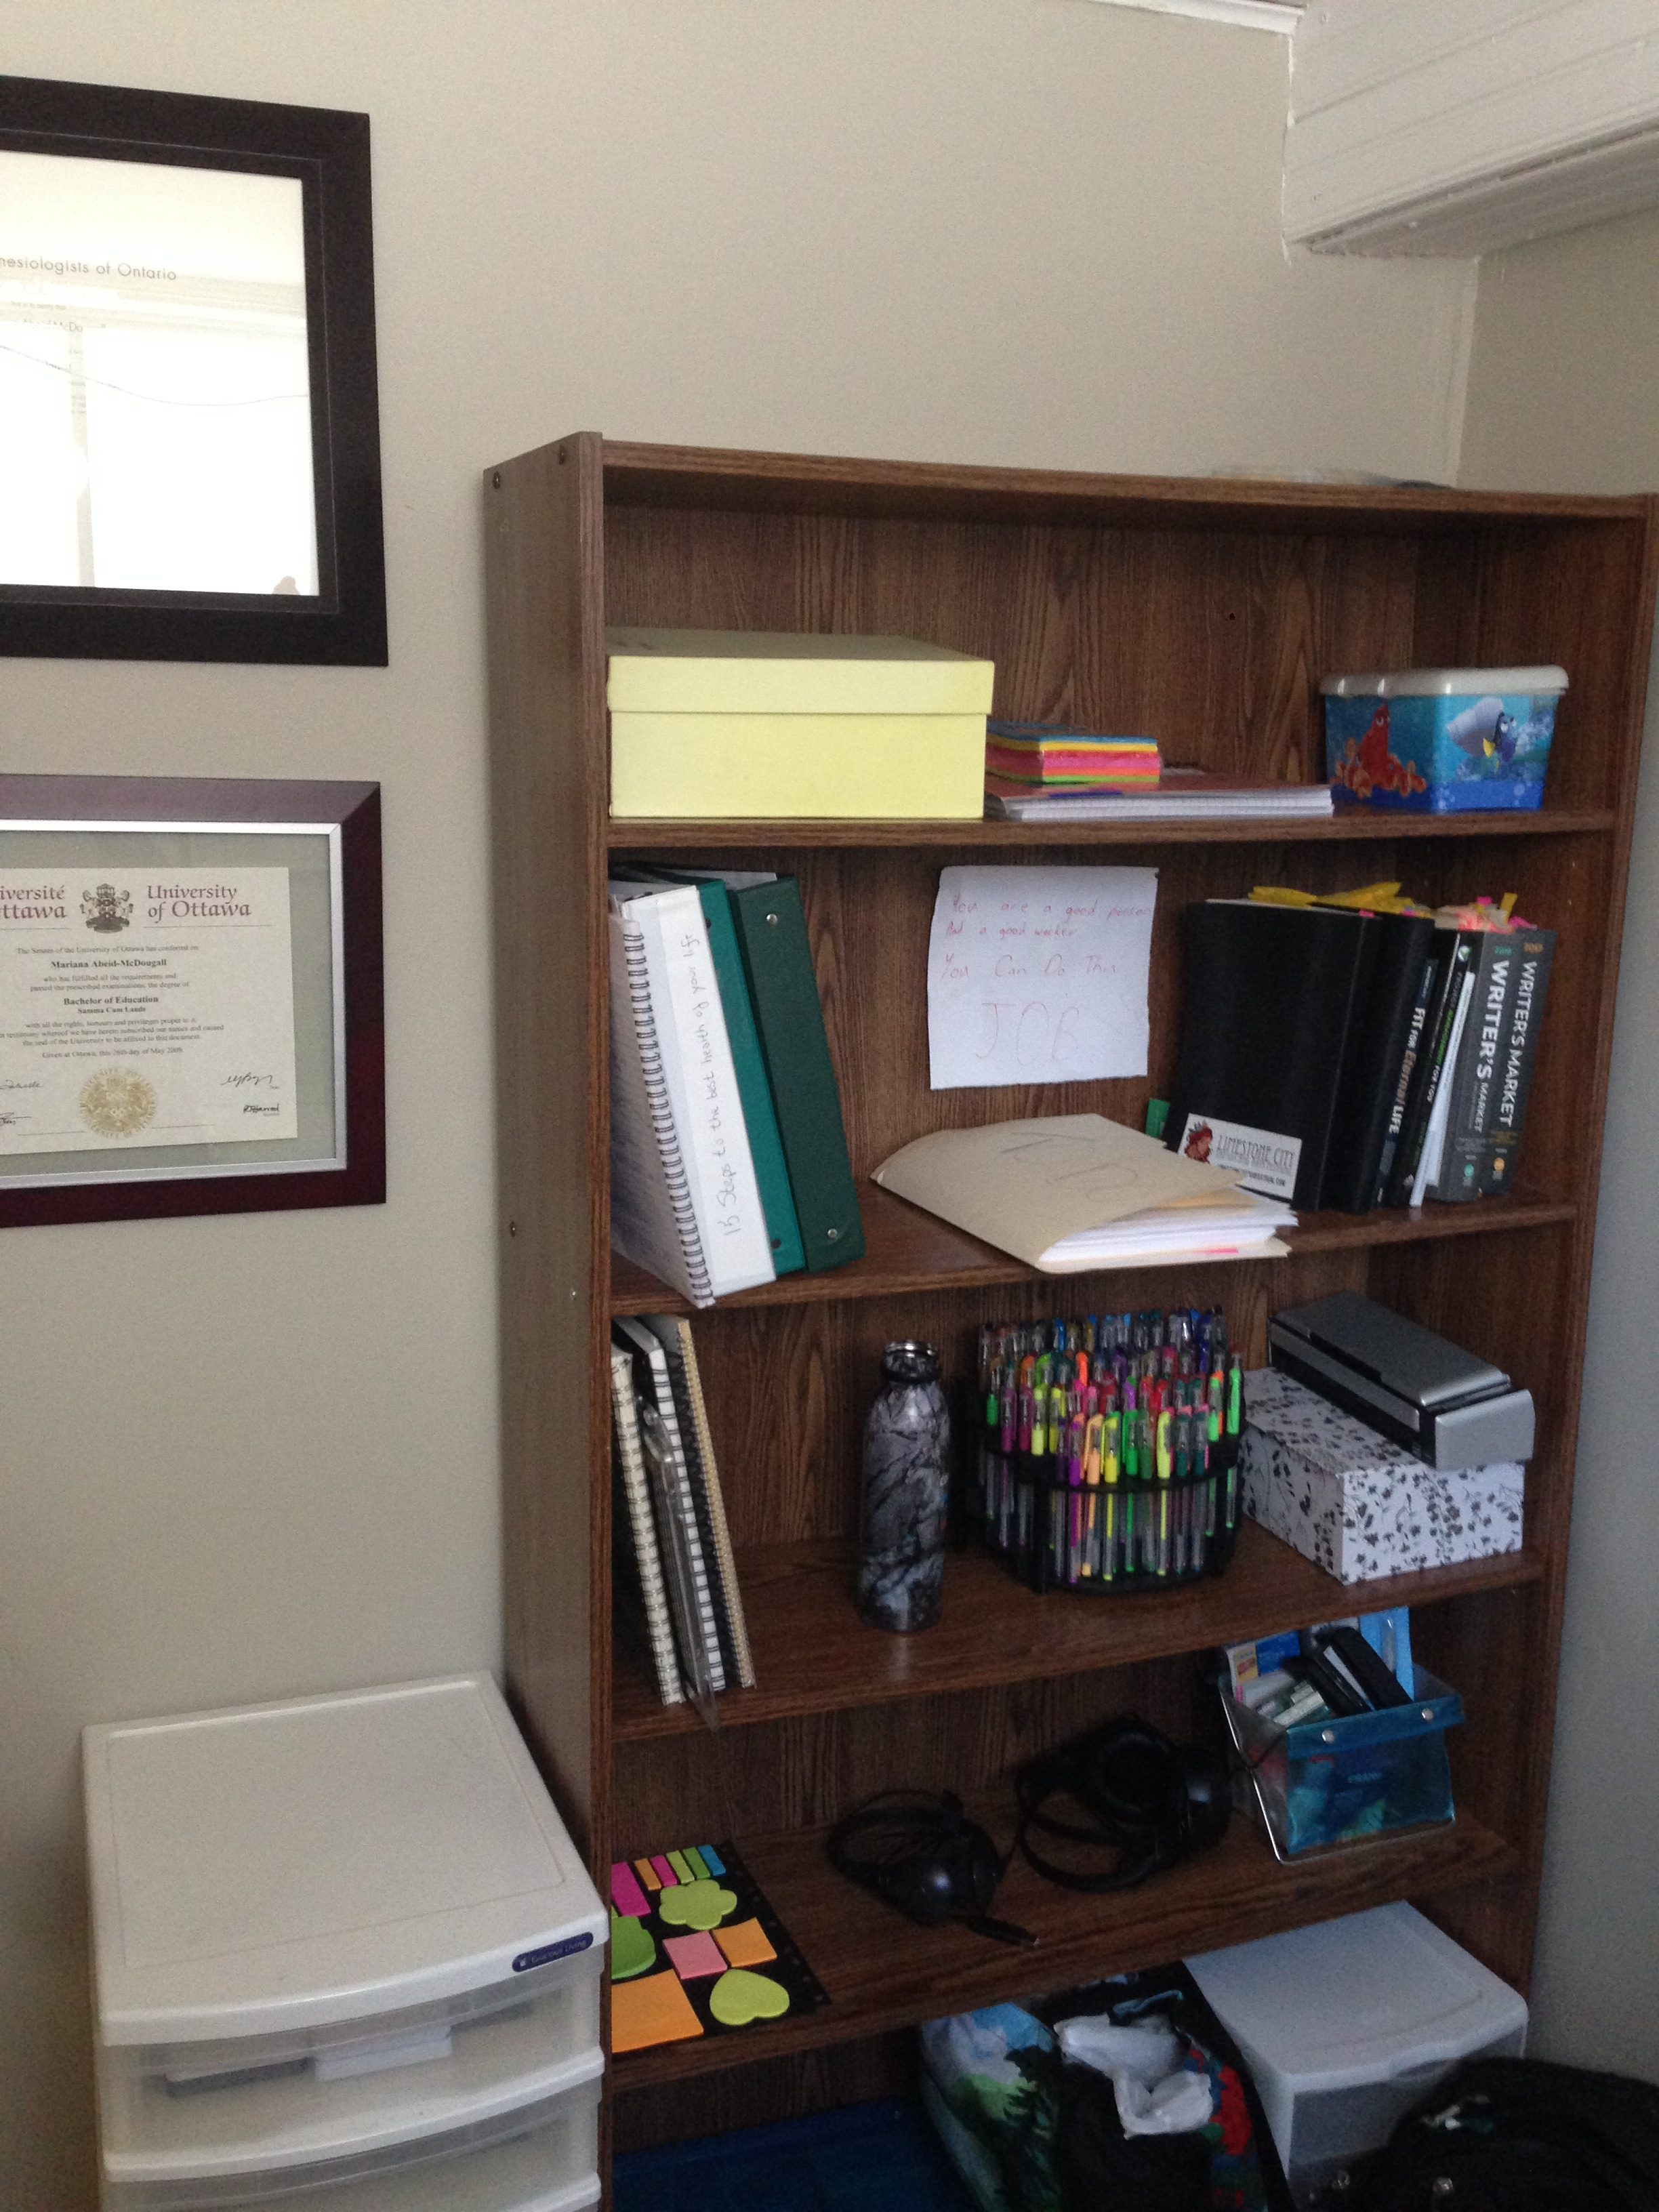 Work Spaces for Writers: A bookshelf with books, binders, decorative boxes, pens, and a water bottle. To the left of the bookshelf are framed degrees on the wall, and on the floor a plastic drawer tower.